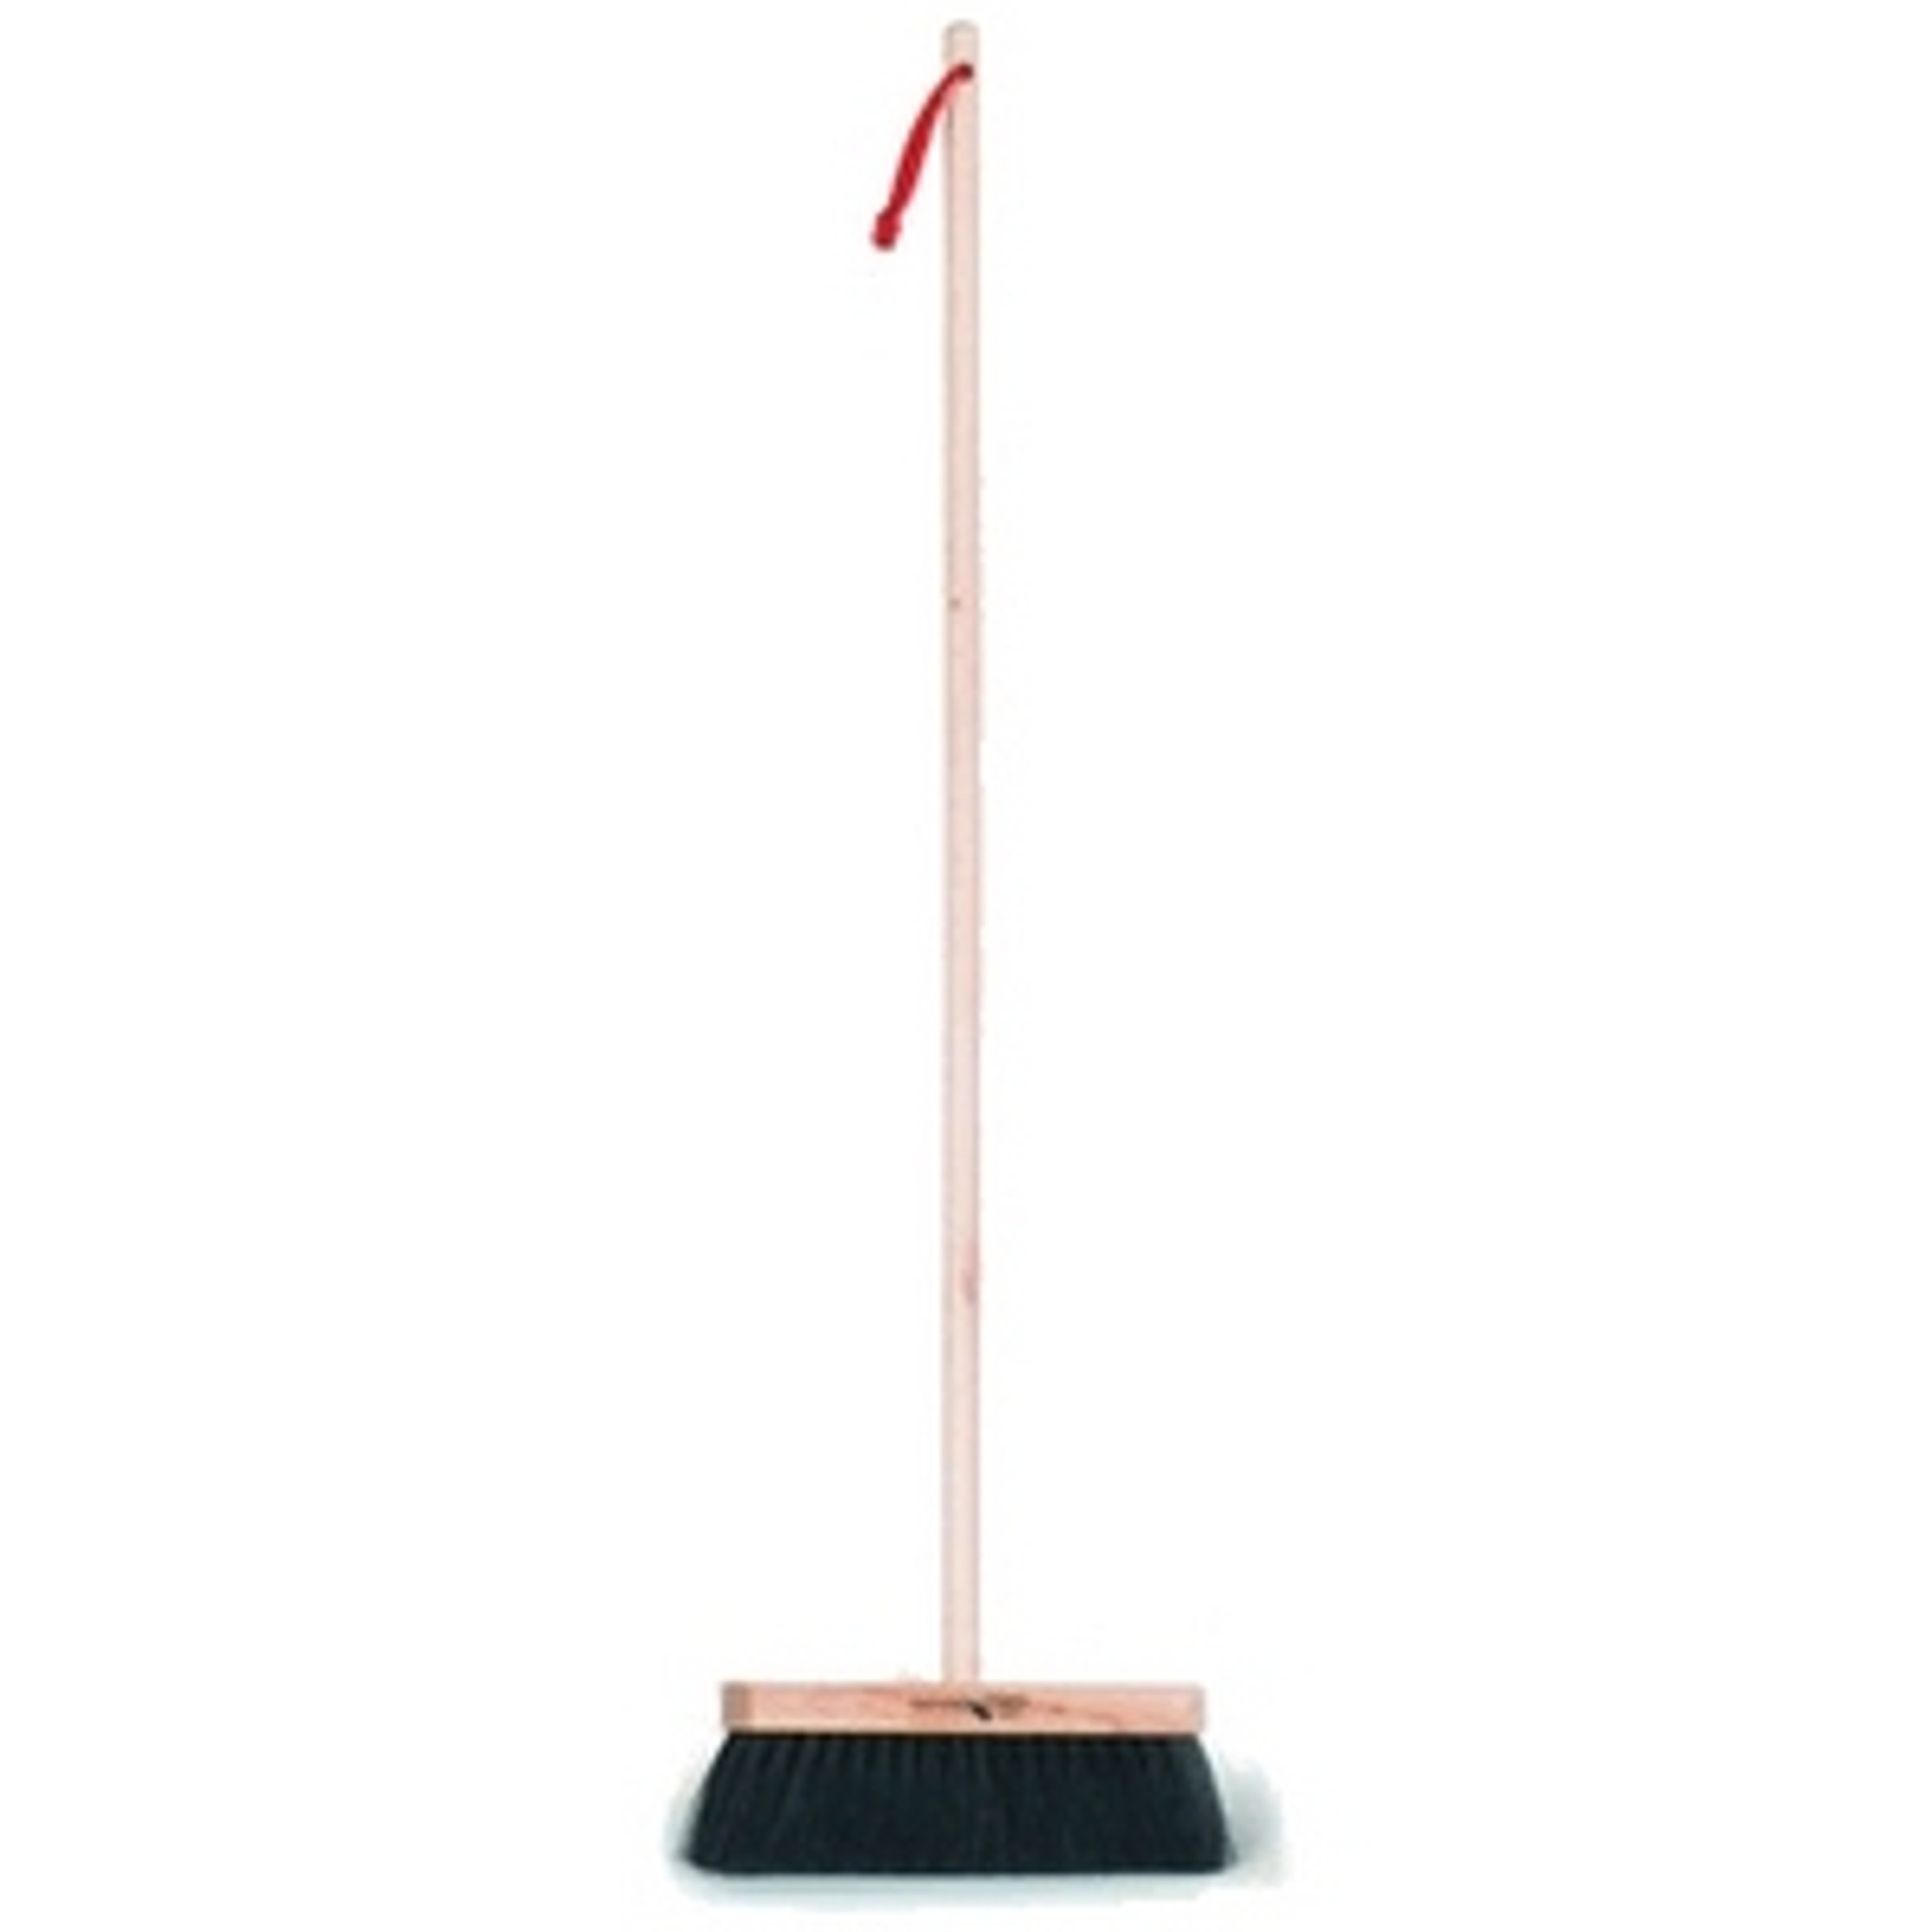 Broom for indoors